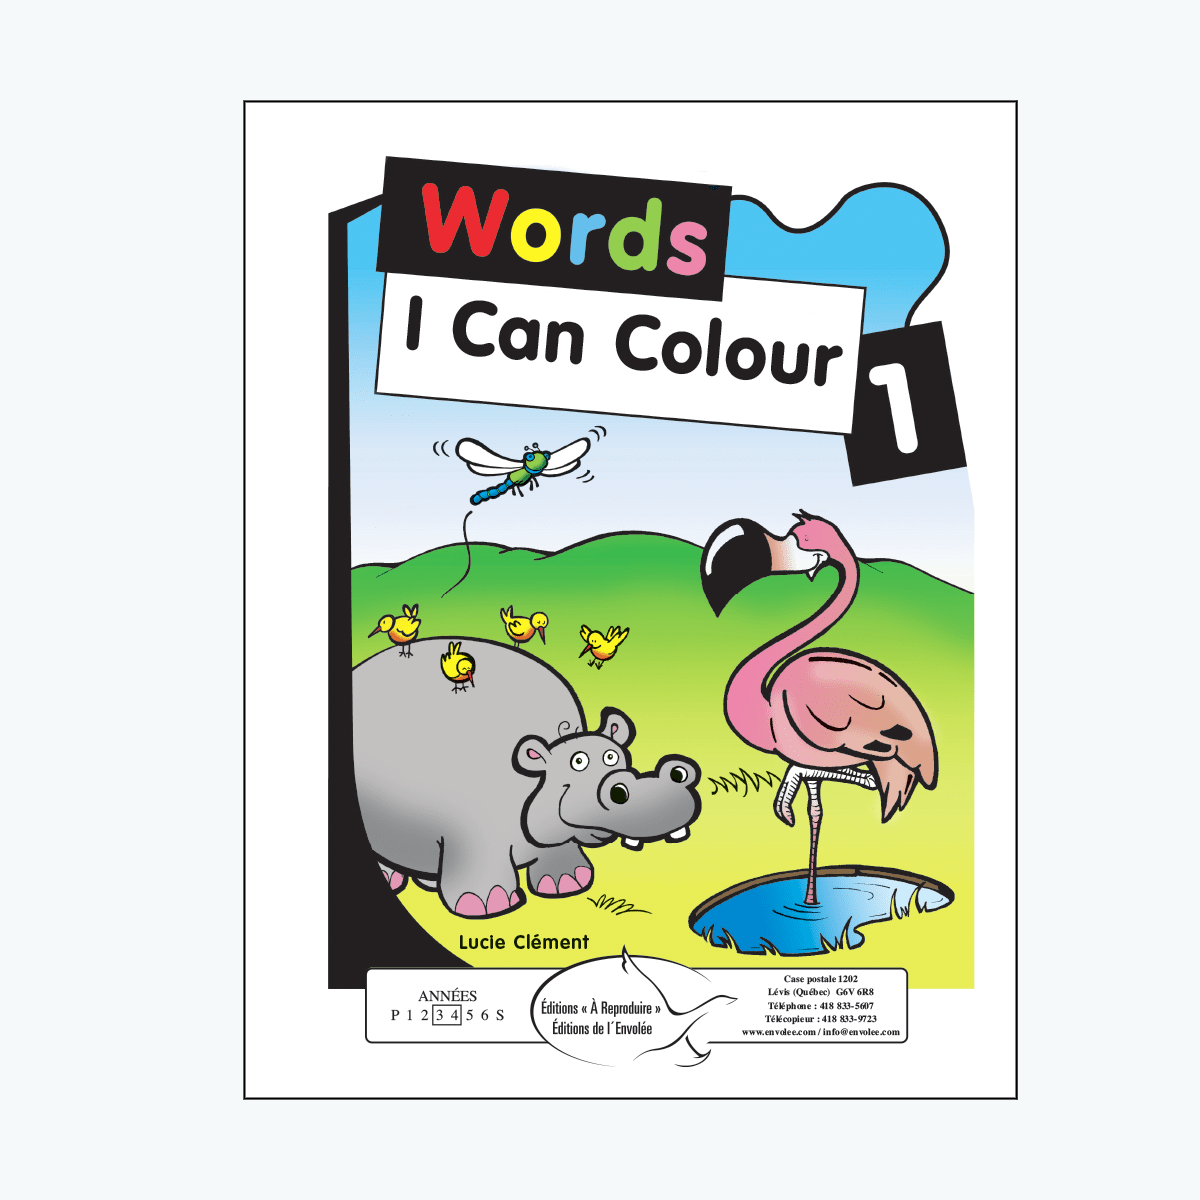 Words I Can Colour 1